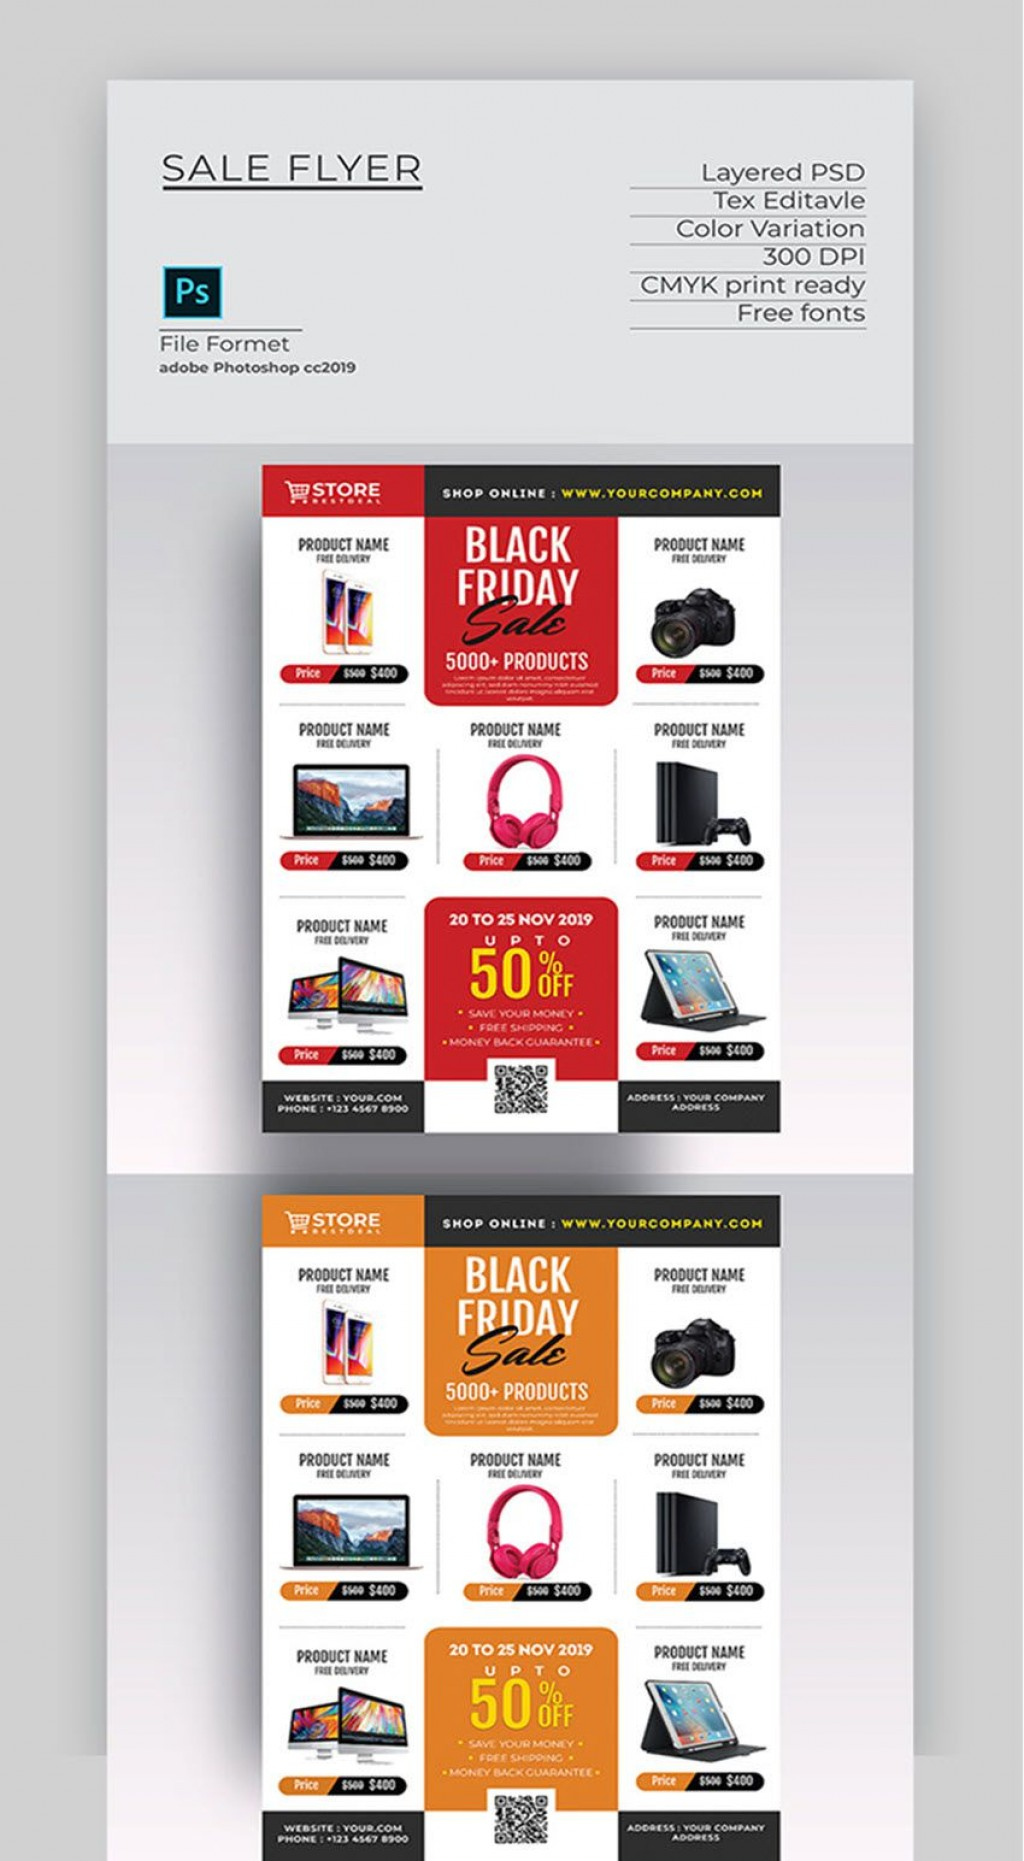 007 Exceptional For Sale Flyer Template Design  Car Ad Microsoft Word HouseLarge